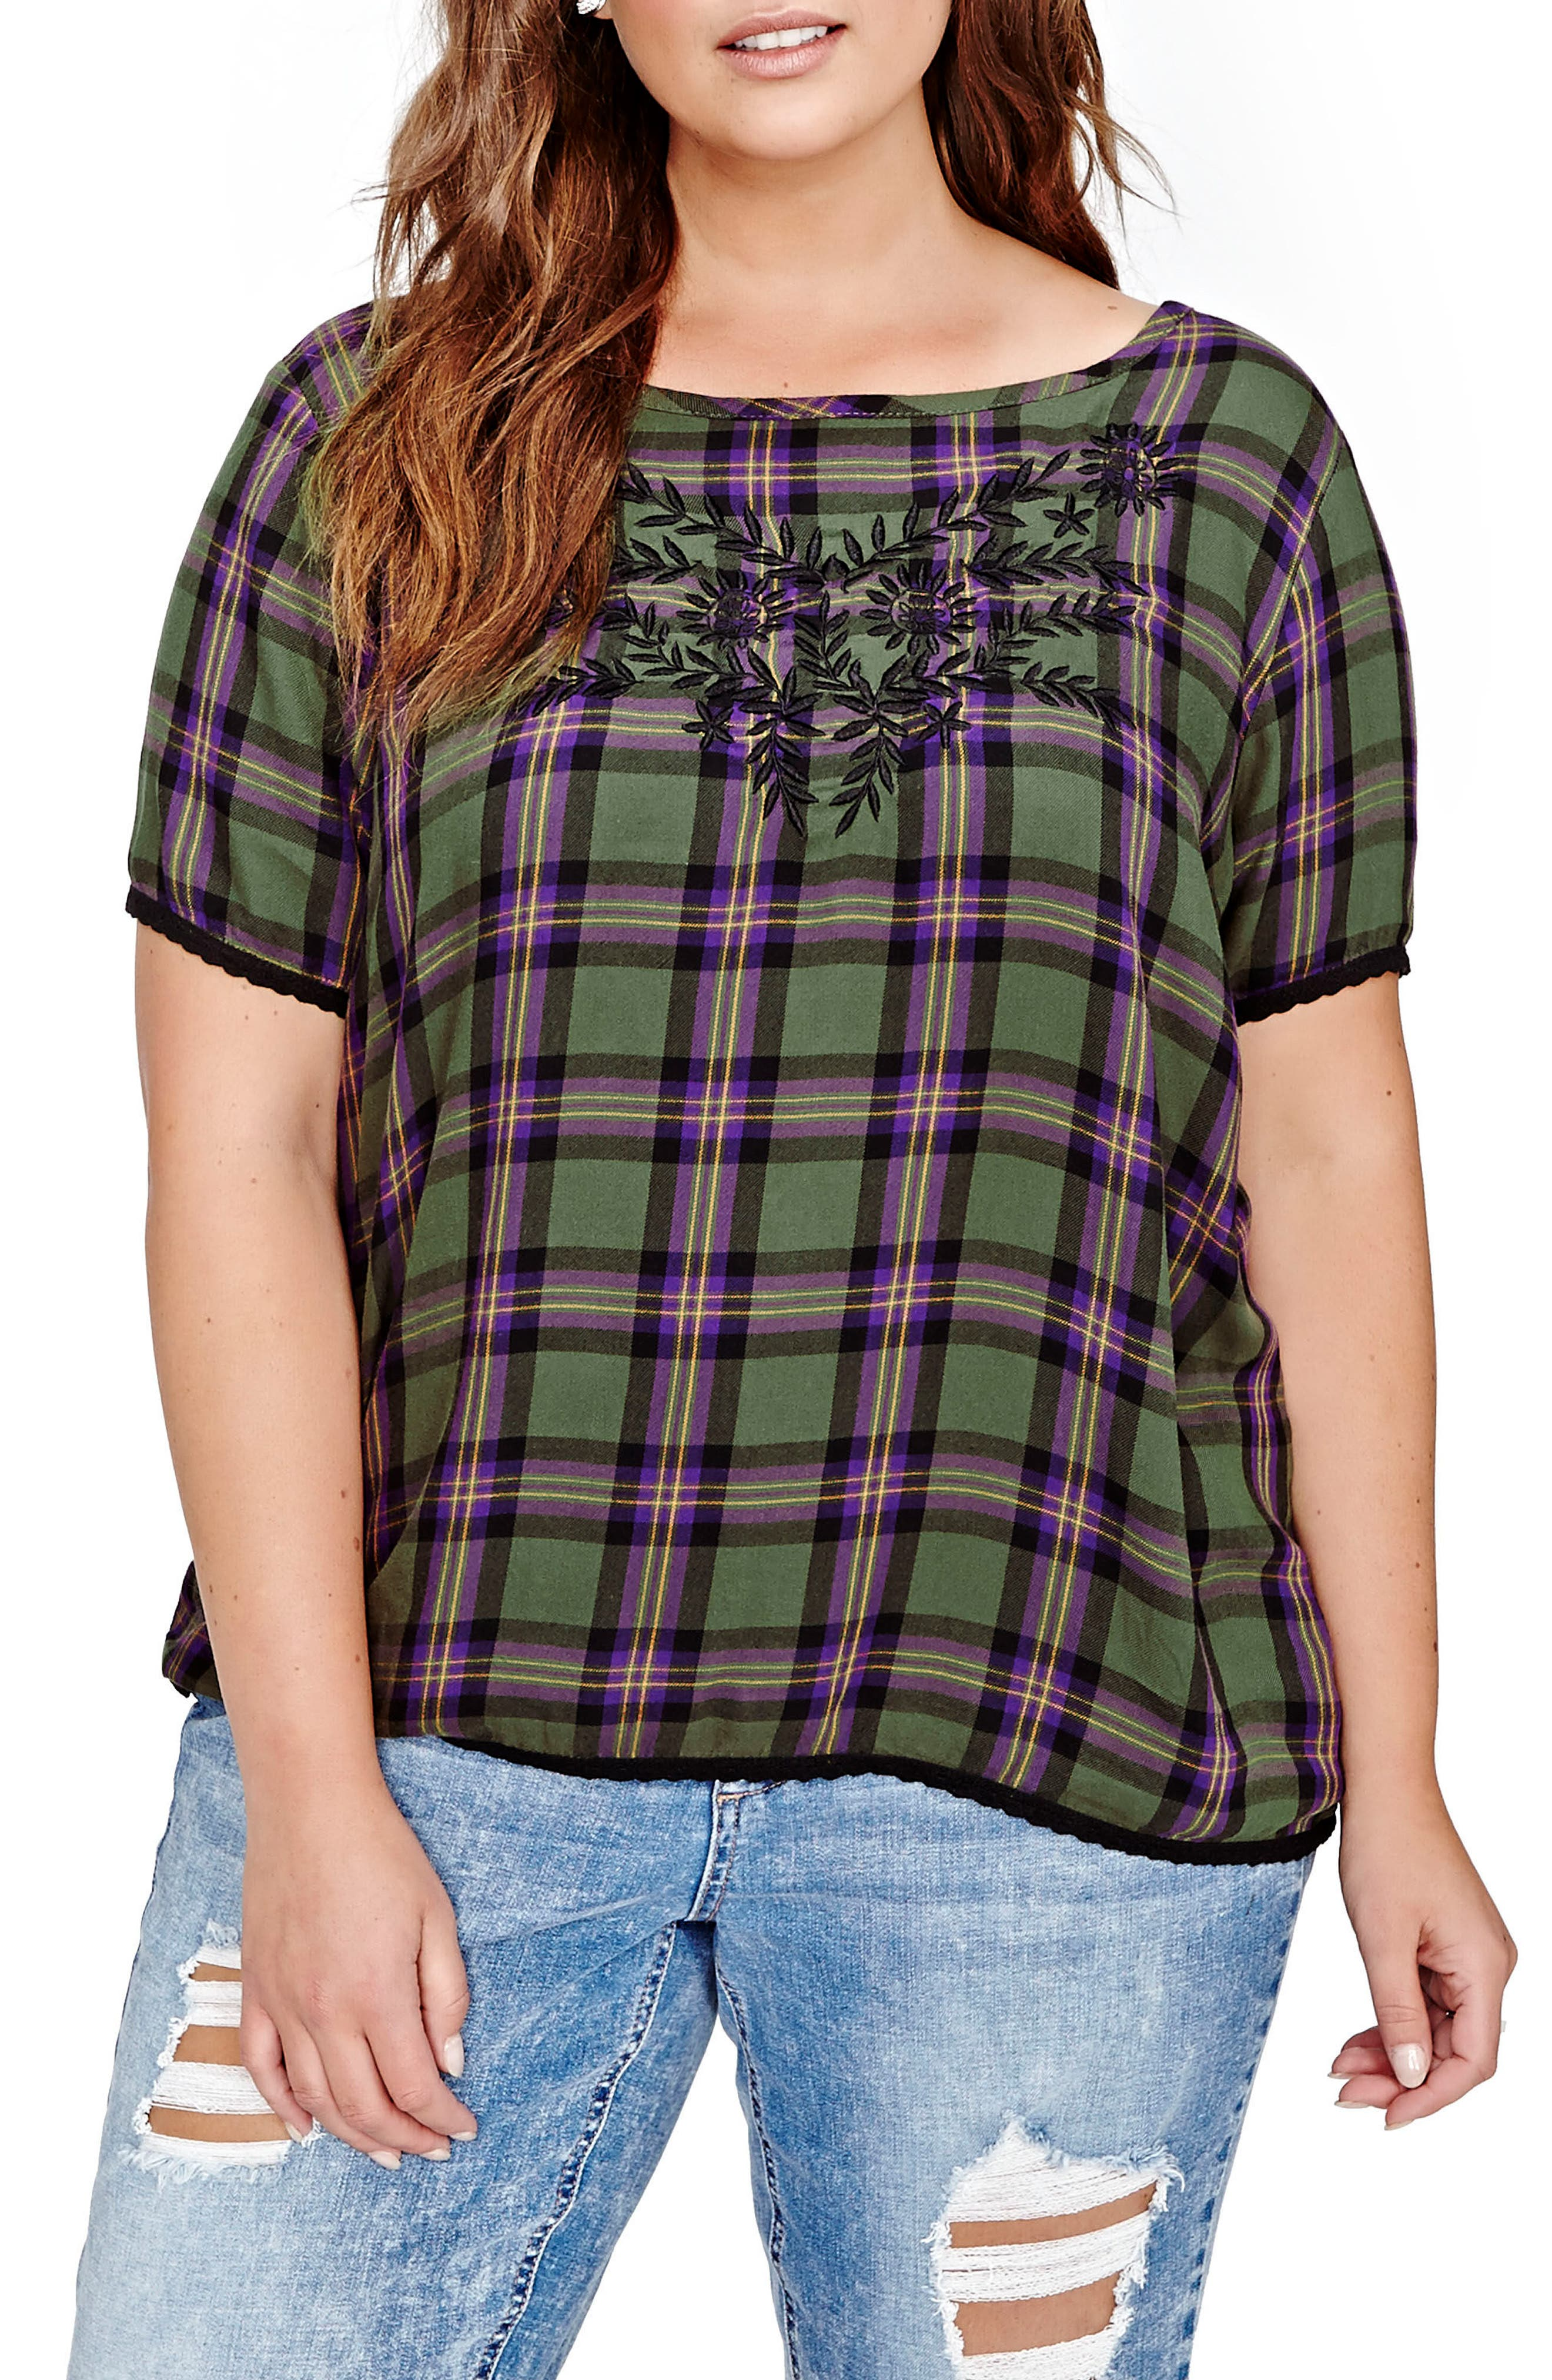 ADDITION ELLE LOVE AND LEGEND Embroidered Plaid Blouse (Plus Size)